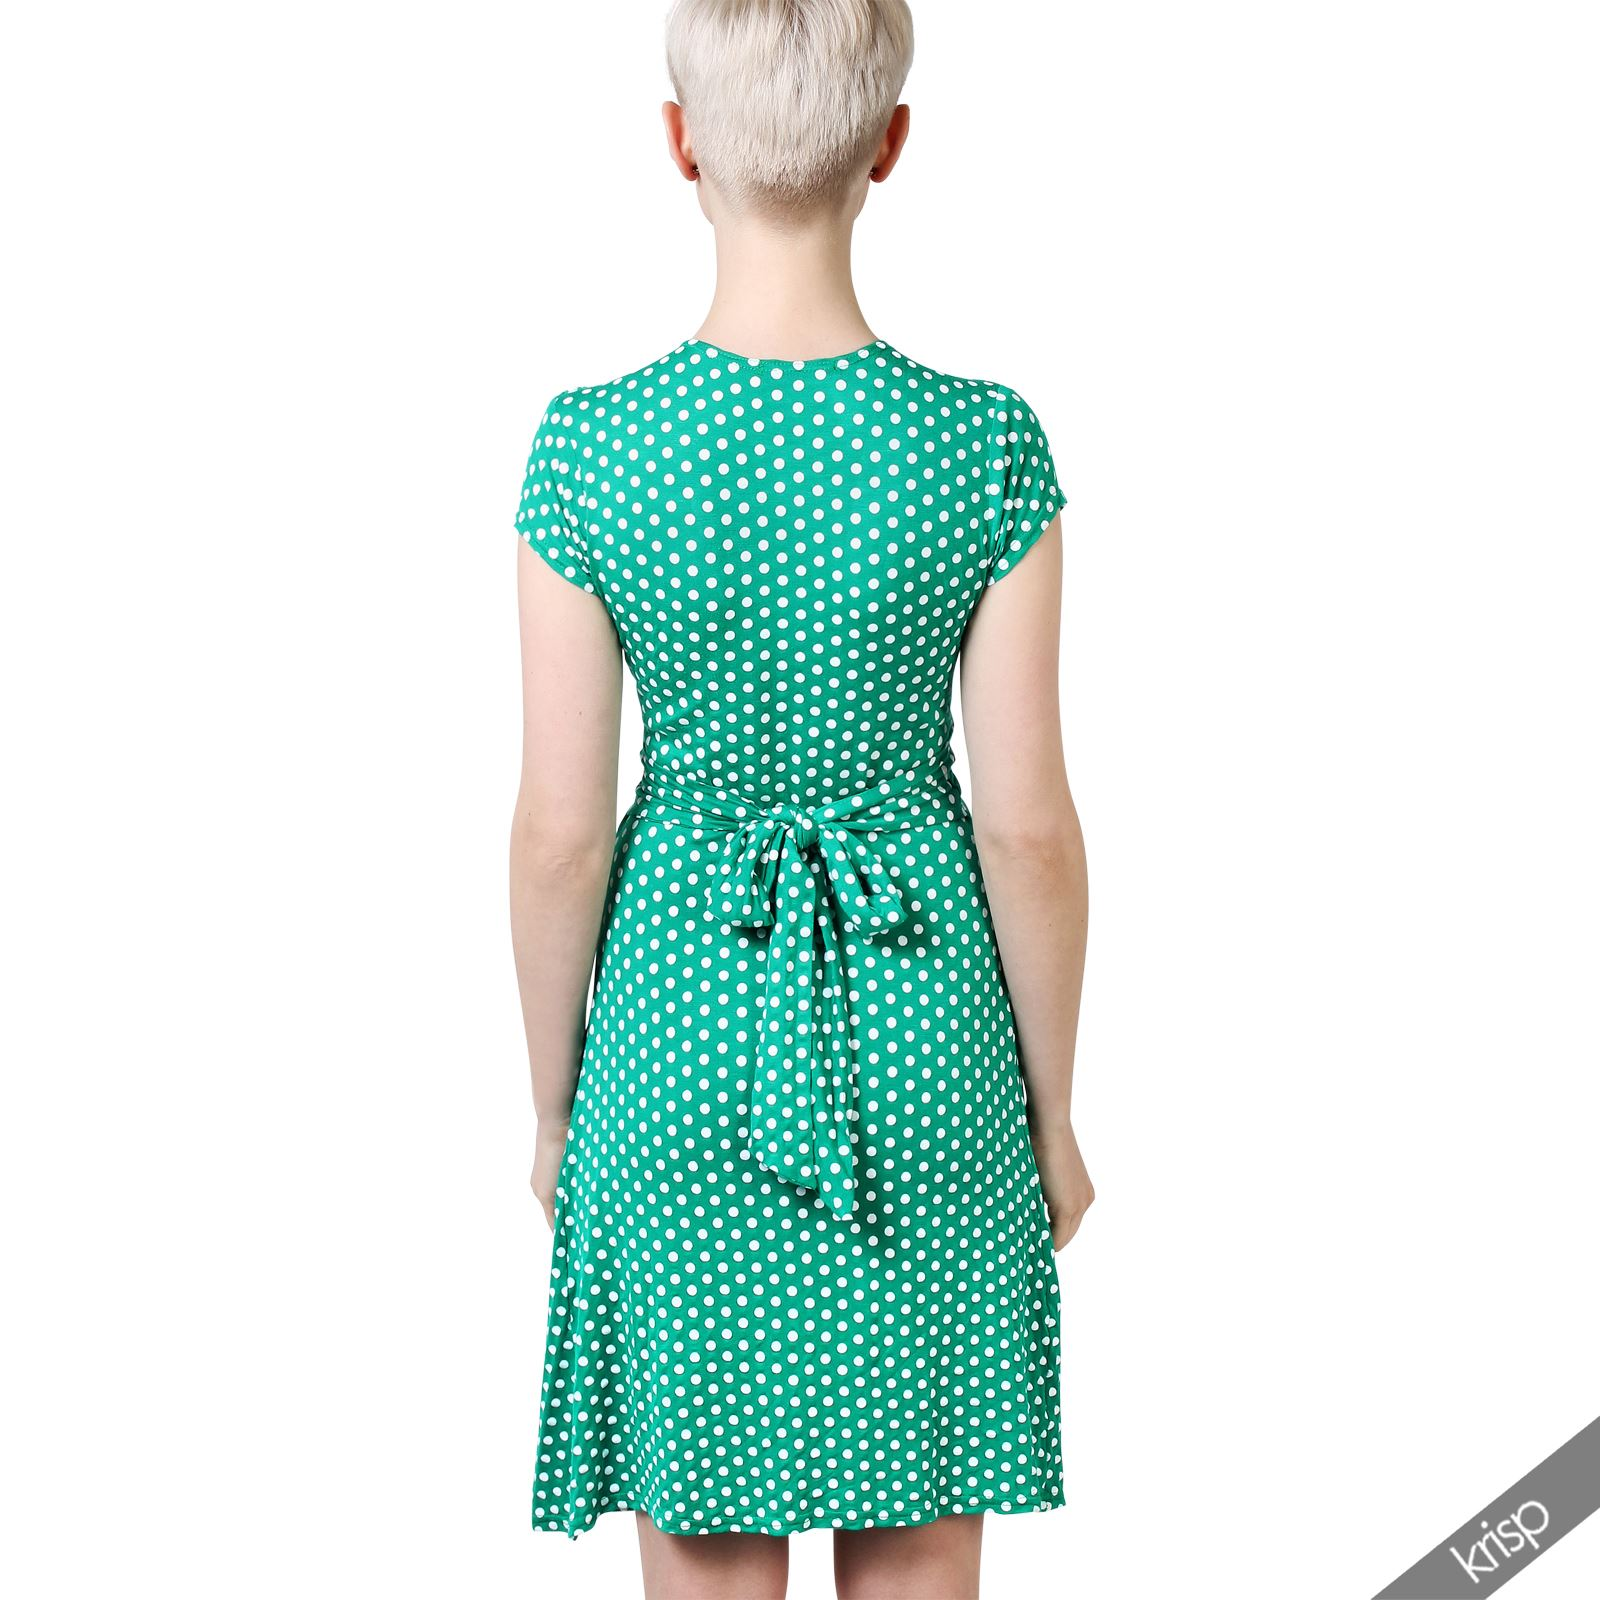 Womens-Polka-Dot-Retro-Dress-Pleated-Skirt-Wrap-Mini-V-Neck-Top-Swing-Party thumbnail 13